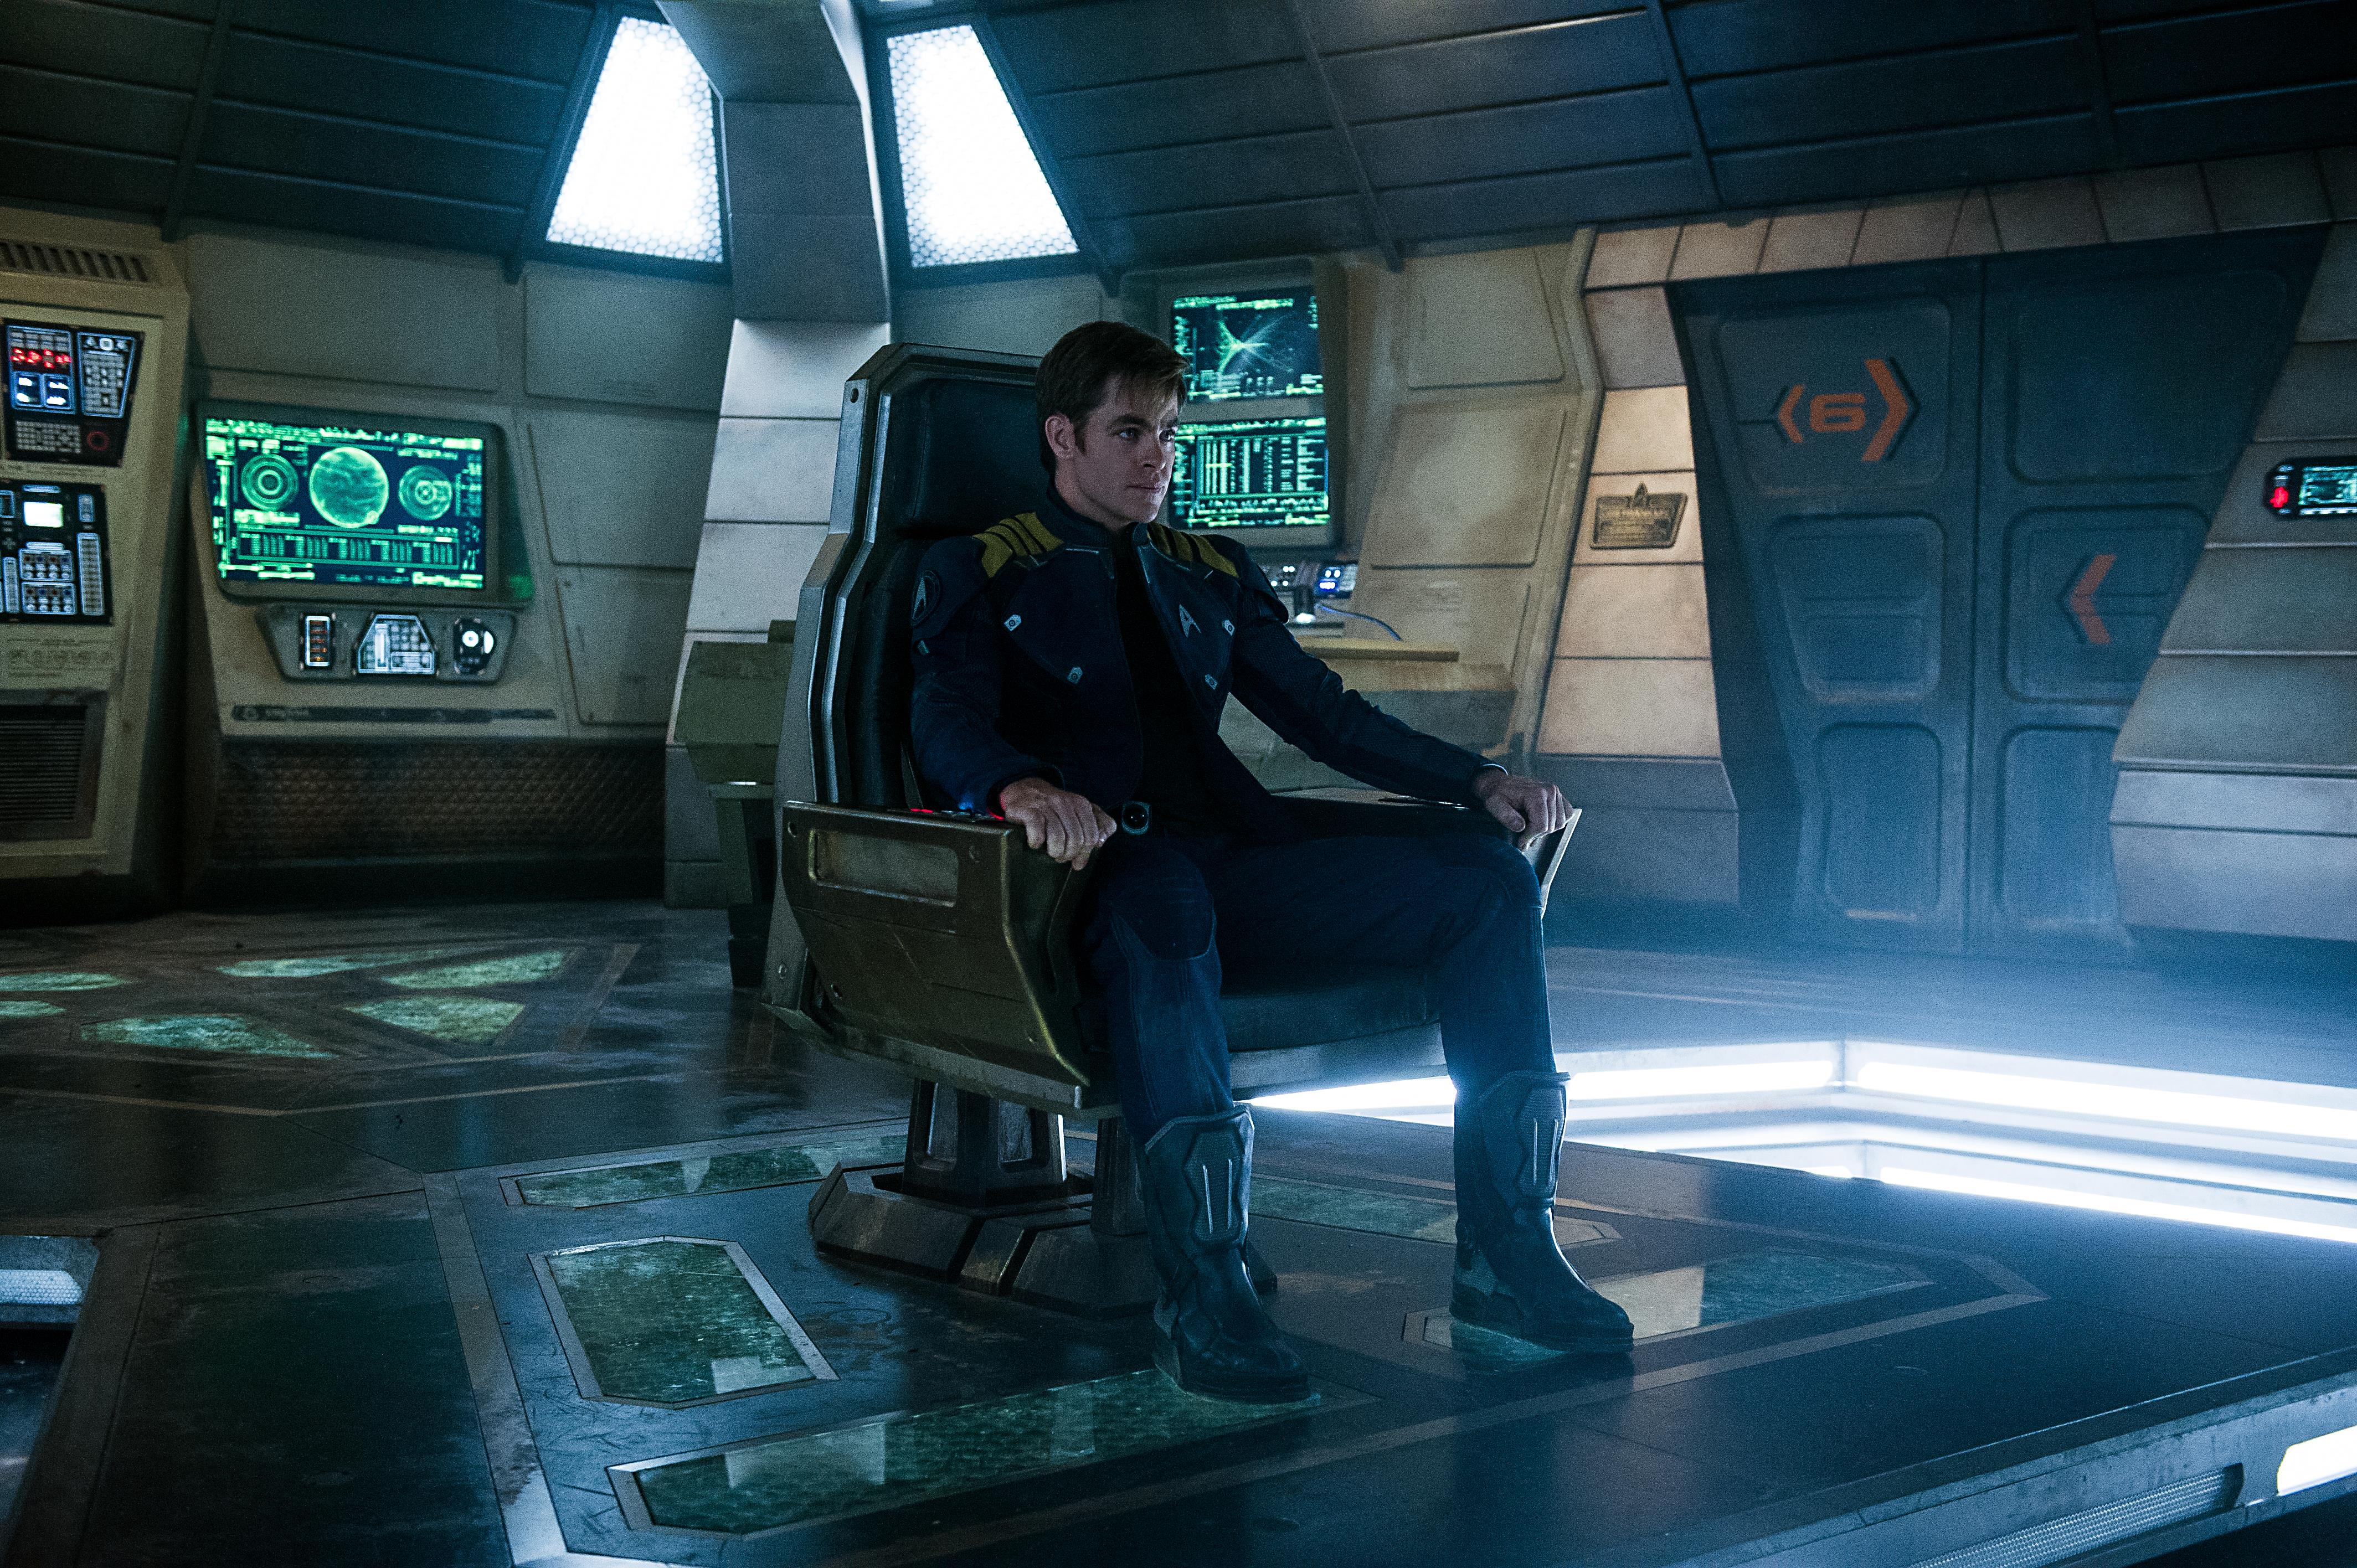 an analysis of the points in the movie star trek Feeling together a semiotic analysis of feeling together a semiotic analysis of star trek my first aim is to analyze star trek from the point of view.